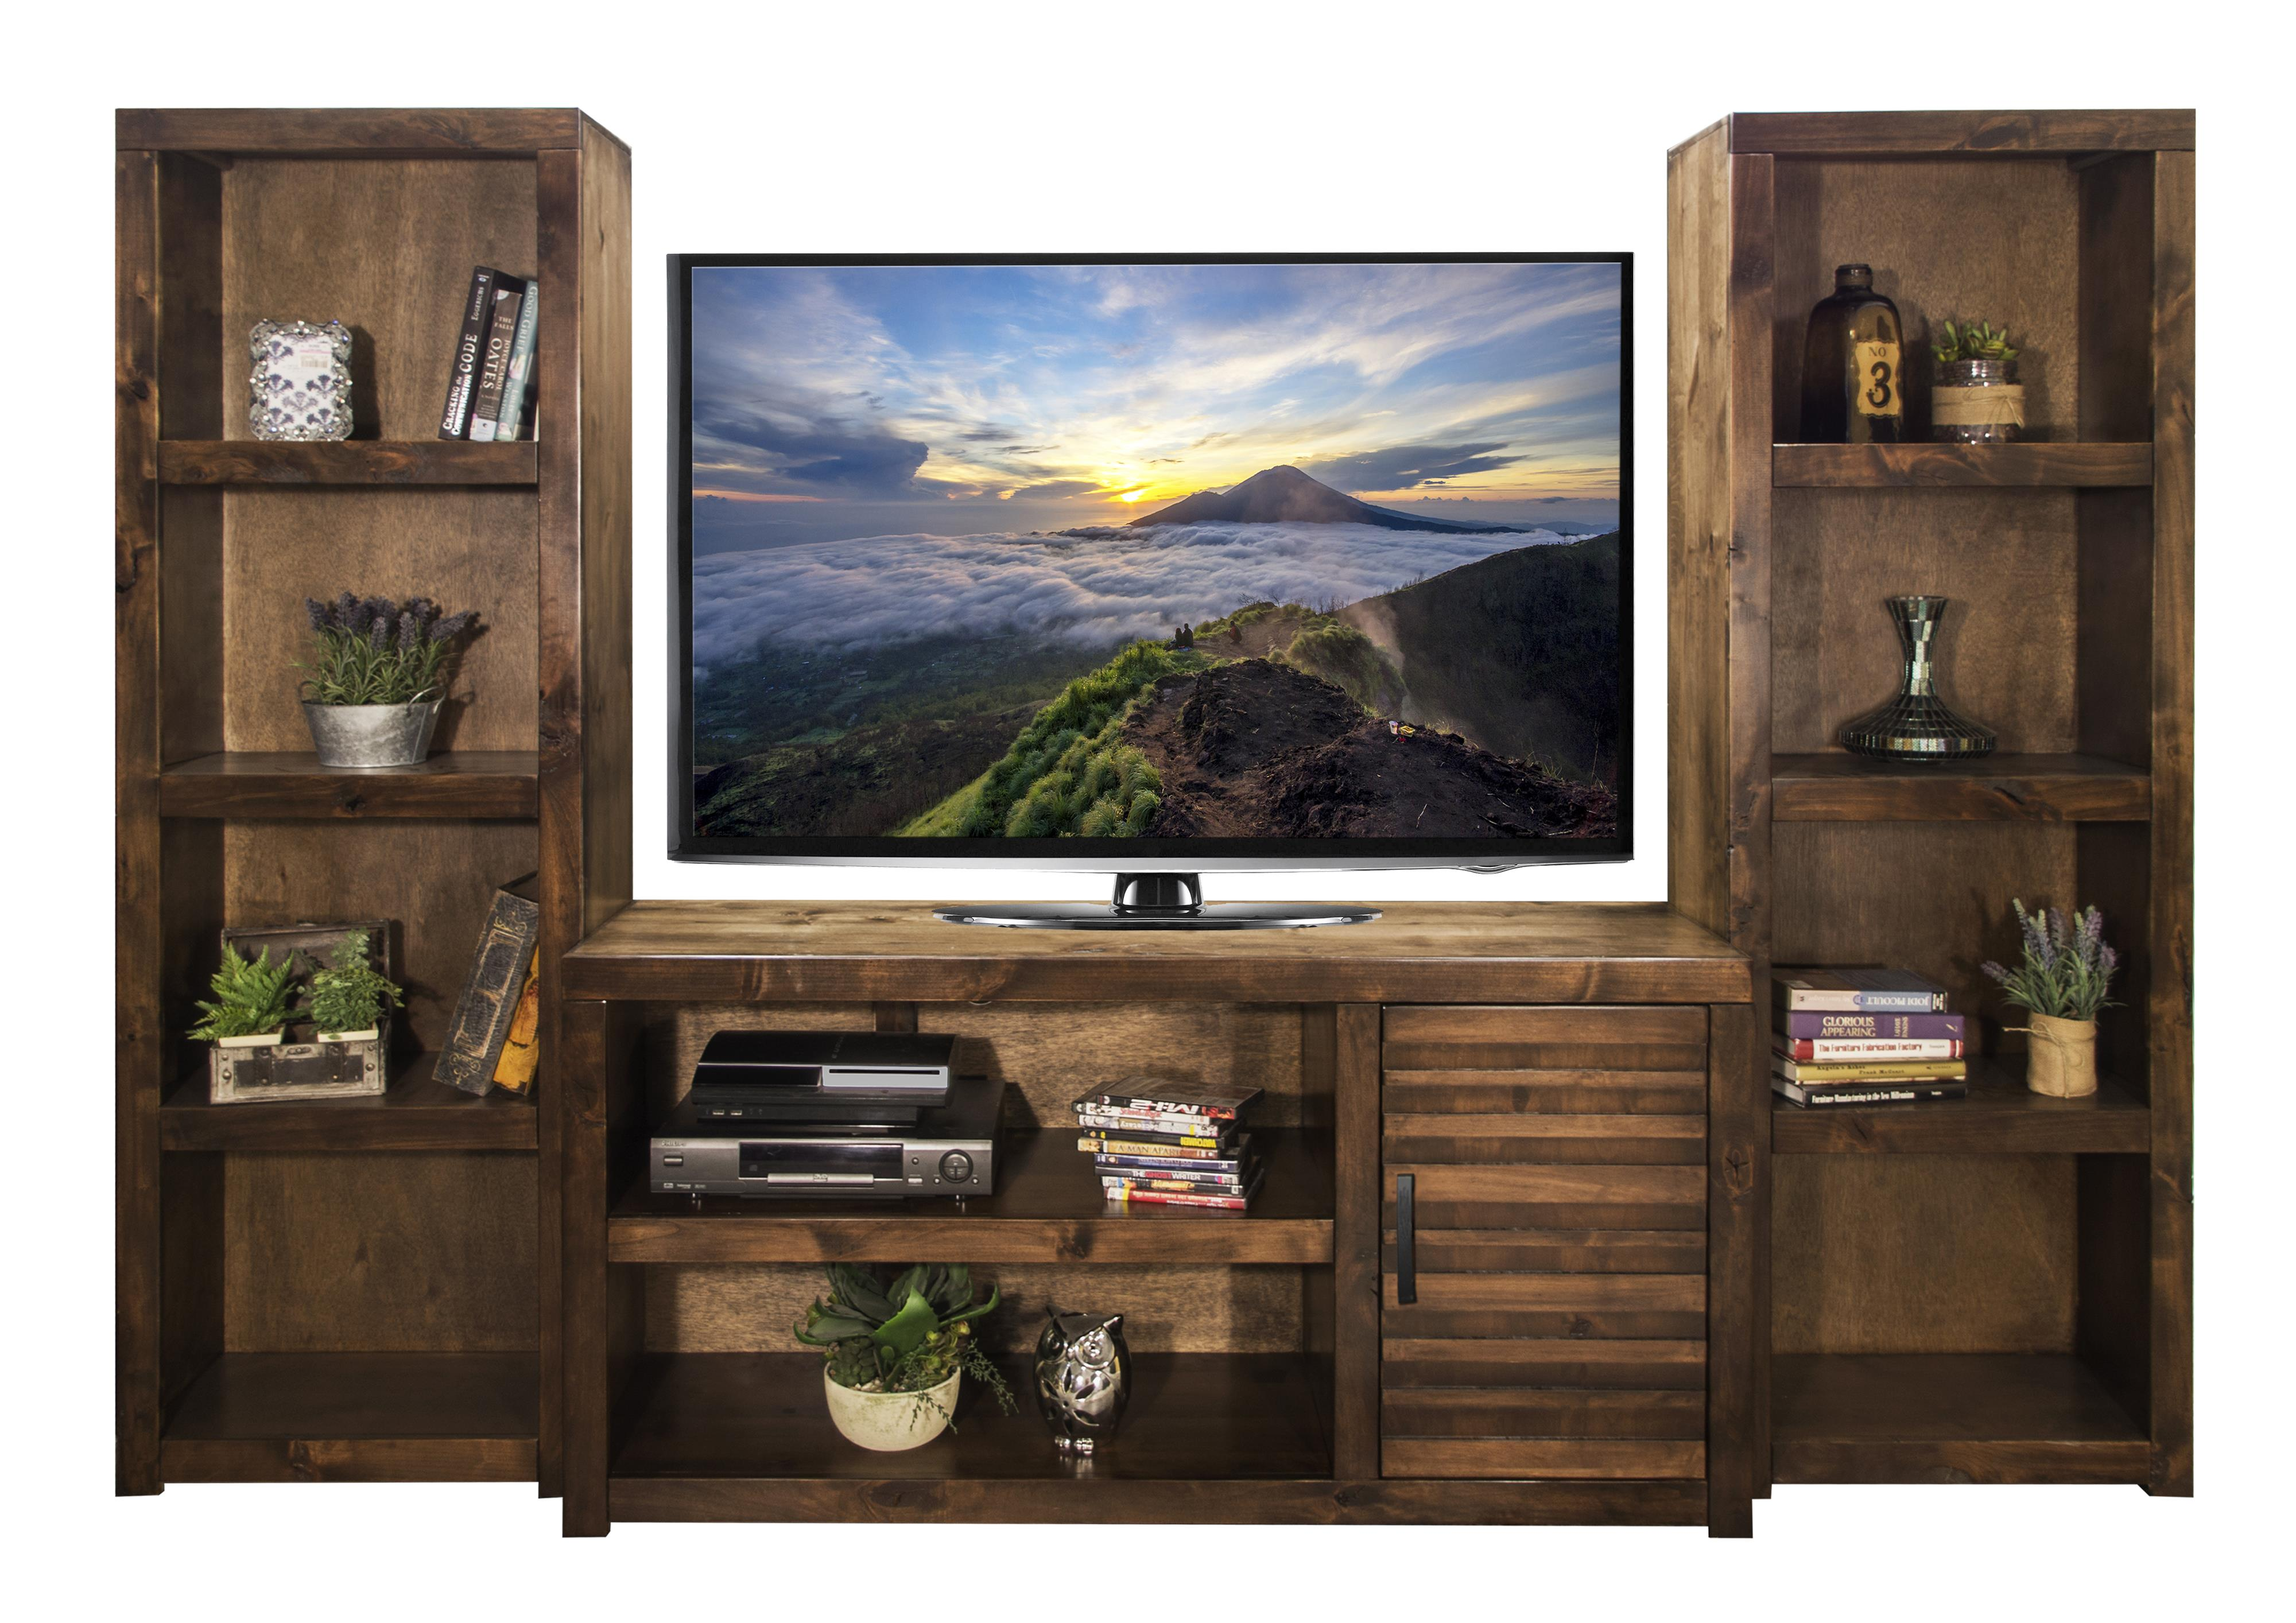 Legends Furniture Sausalito Collection Entertainment Wall - Item Number: SL1213+2xSL3203-WKY